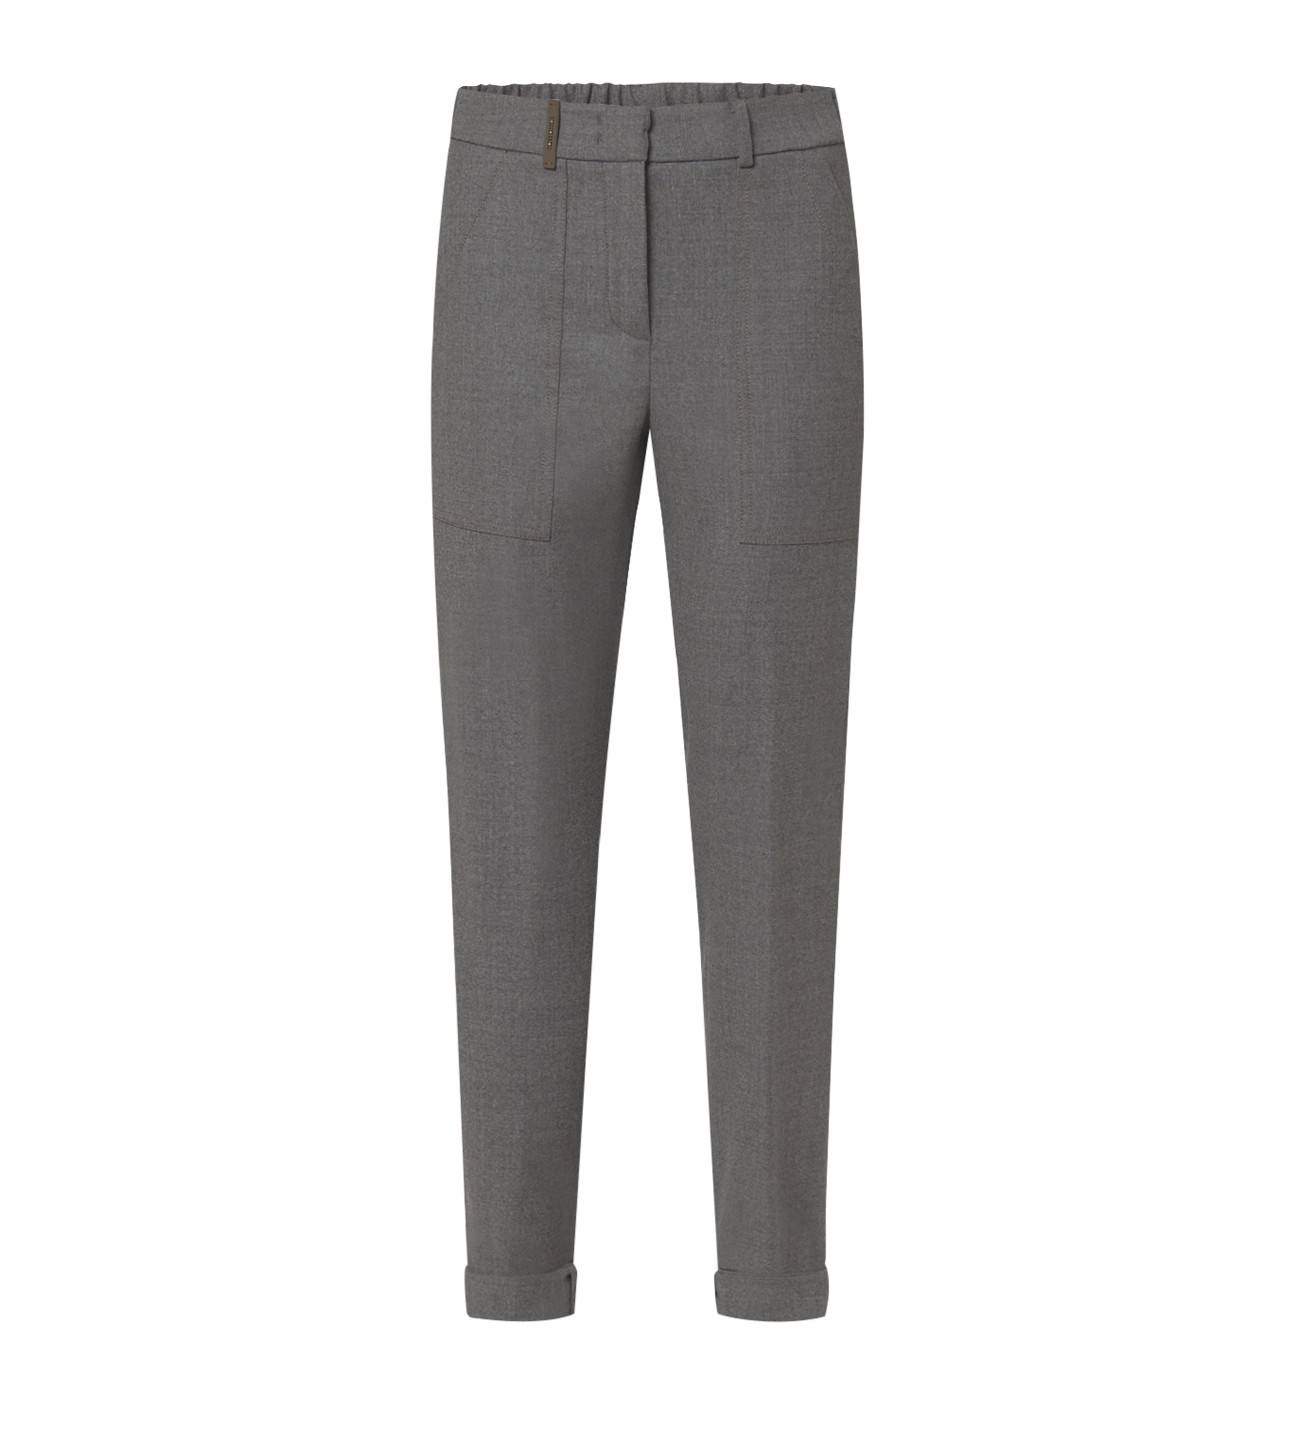 PESERICO_WOOL_CARGO_TROUSERS_MARIONA_FASHION_CLOTHING_WOMAN_SHOP_ONLINE_P04866Z